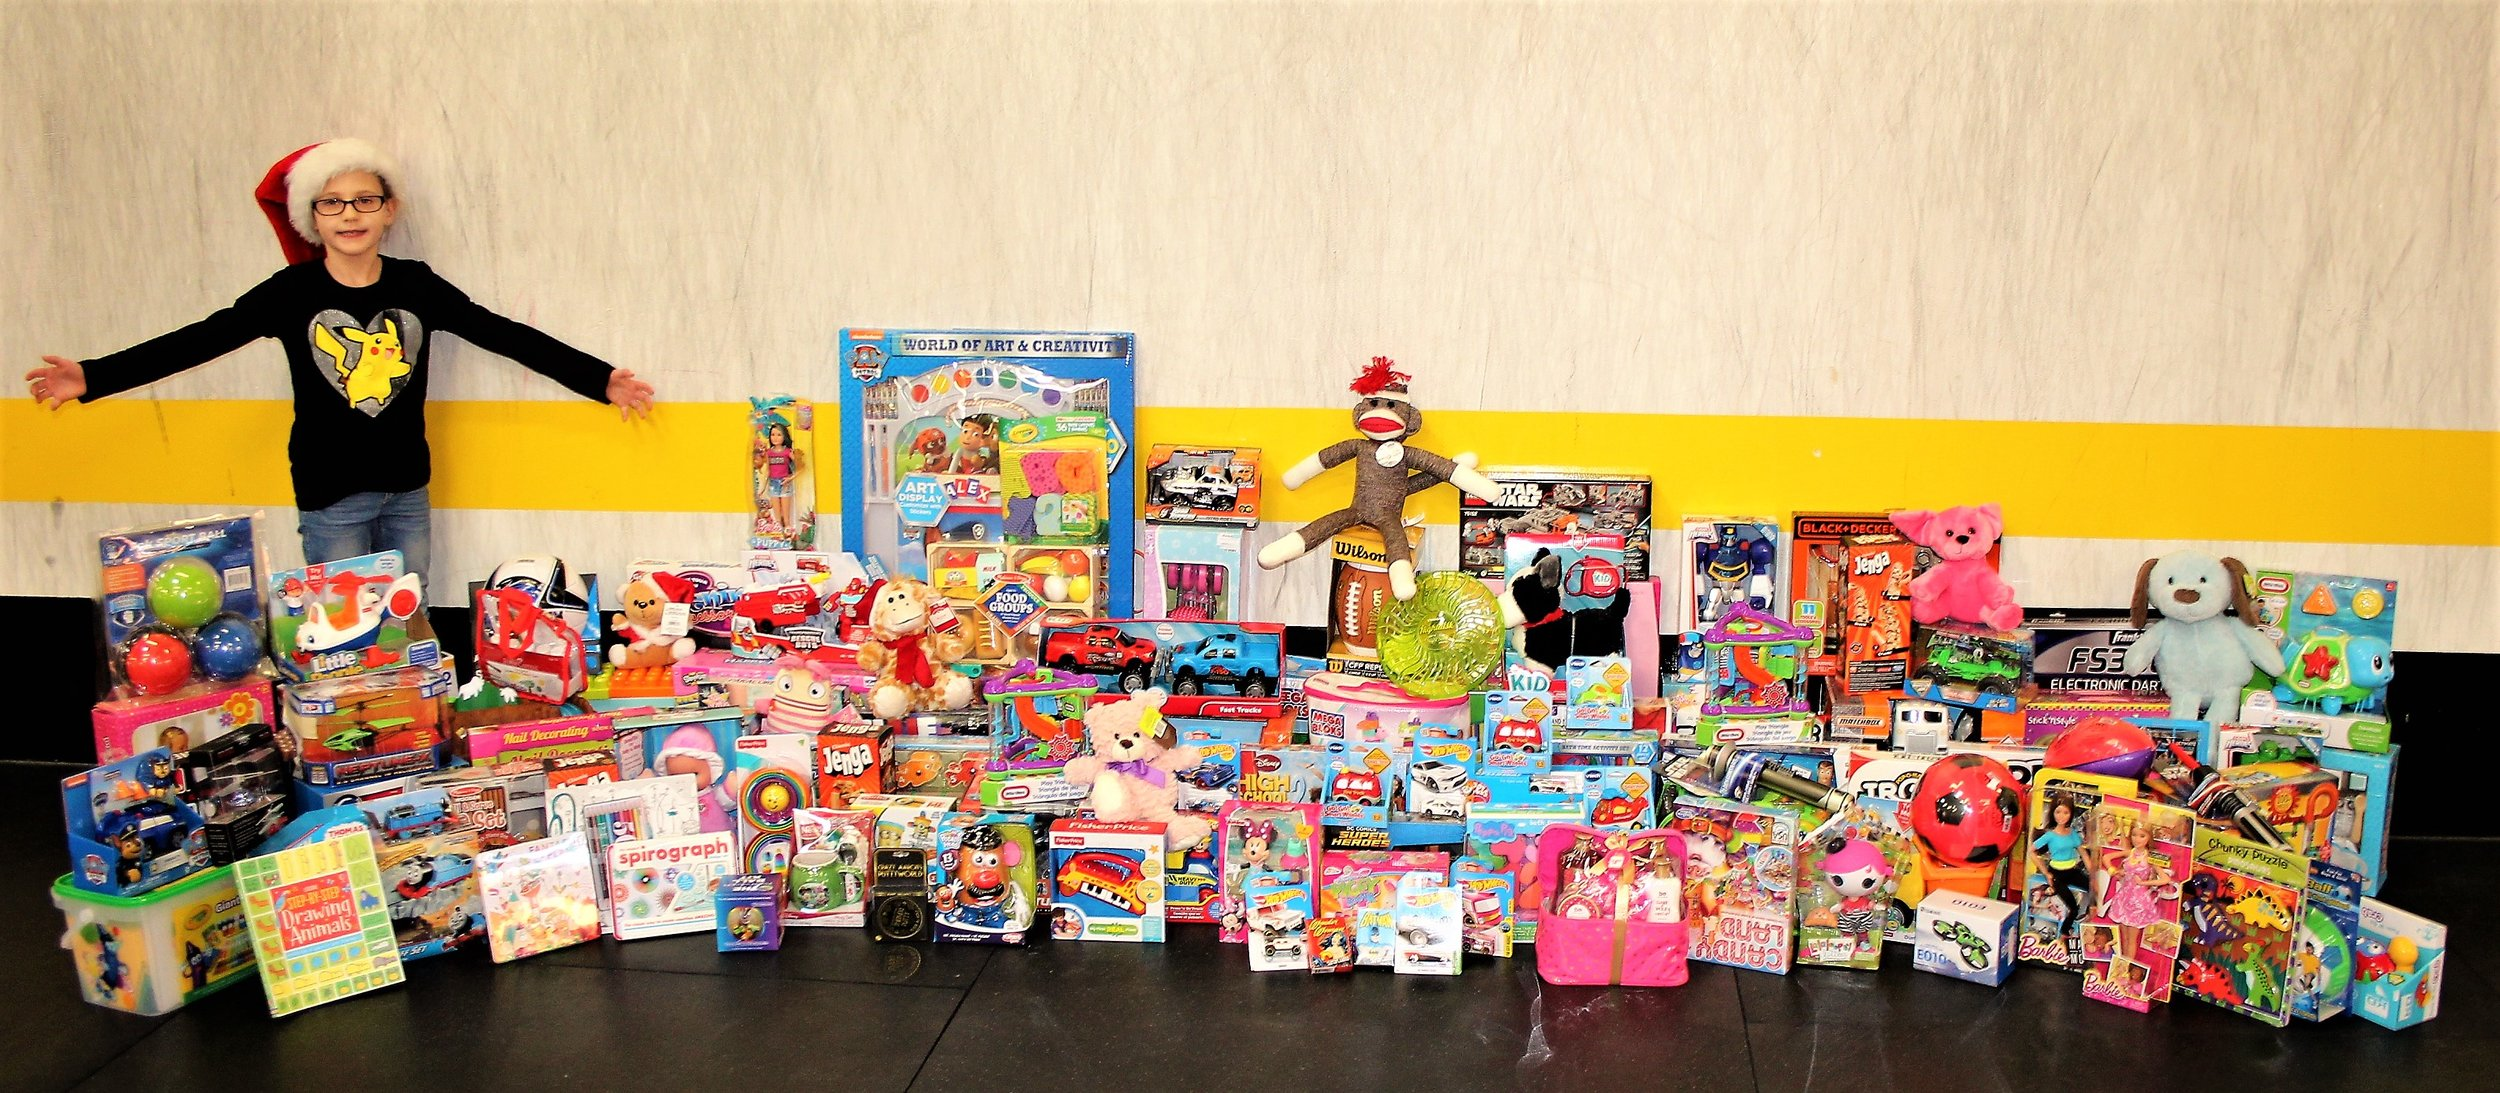 We collected 123 toys for the Toys for Tots drive this year! We are so happy and thankful for everyone that donated. We collected 42 more toys than last year. Woohoo!